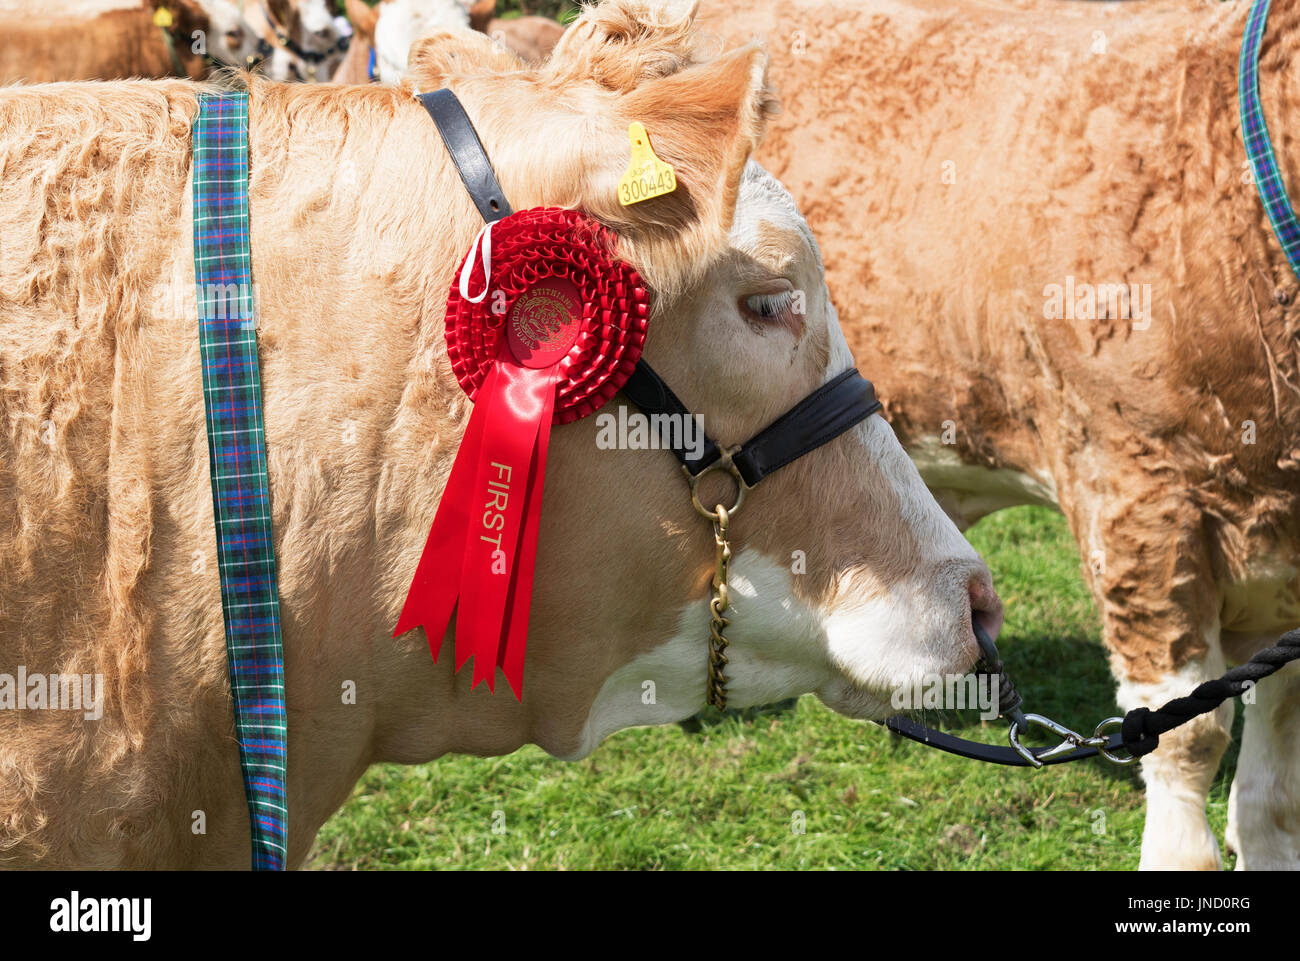 a first prize rozette winner winning bull cow at a country fair in cornwall, england, uk. - Stock Image